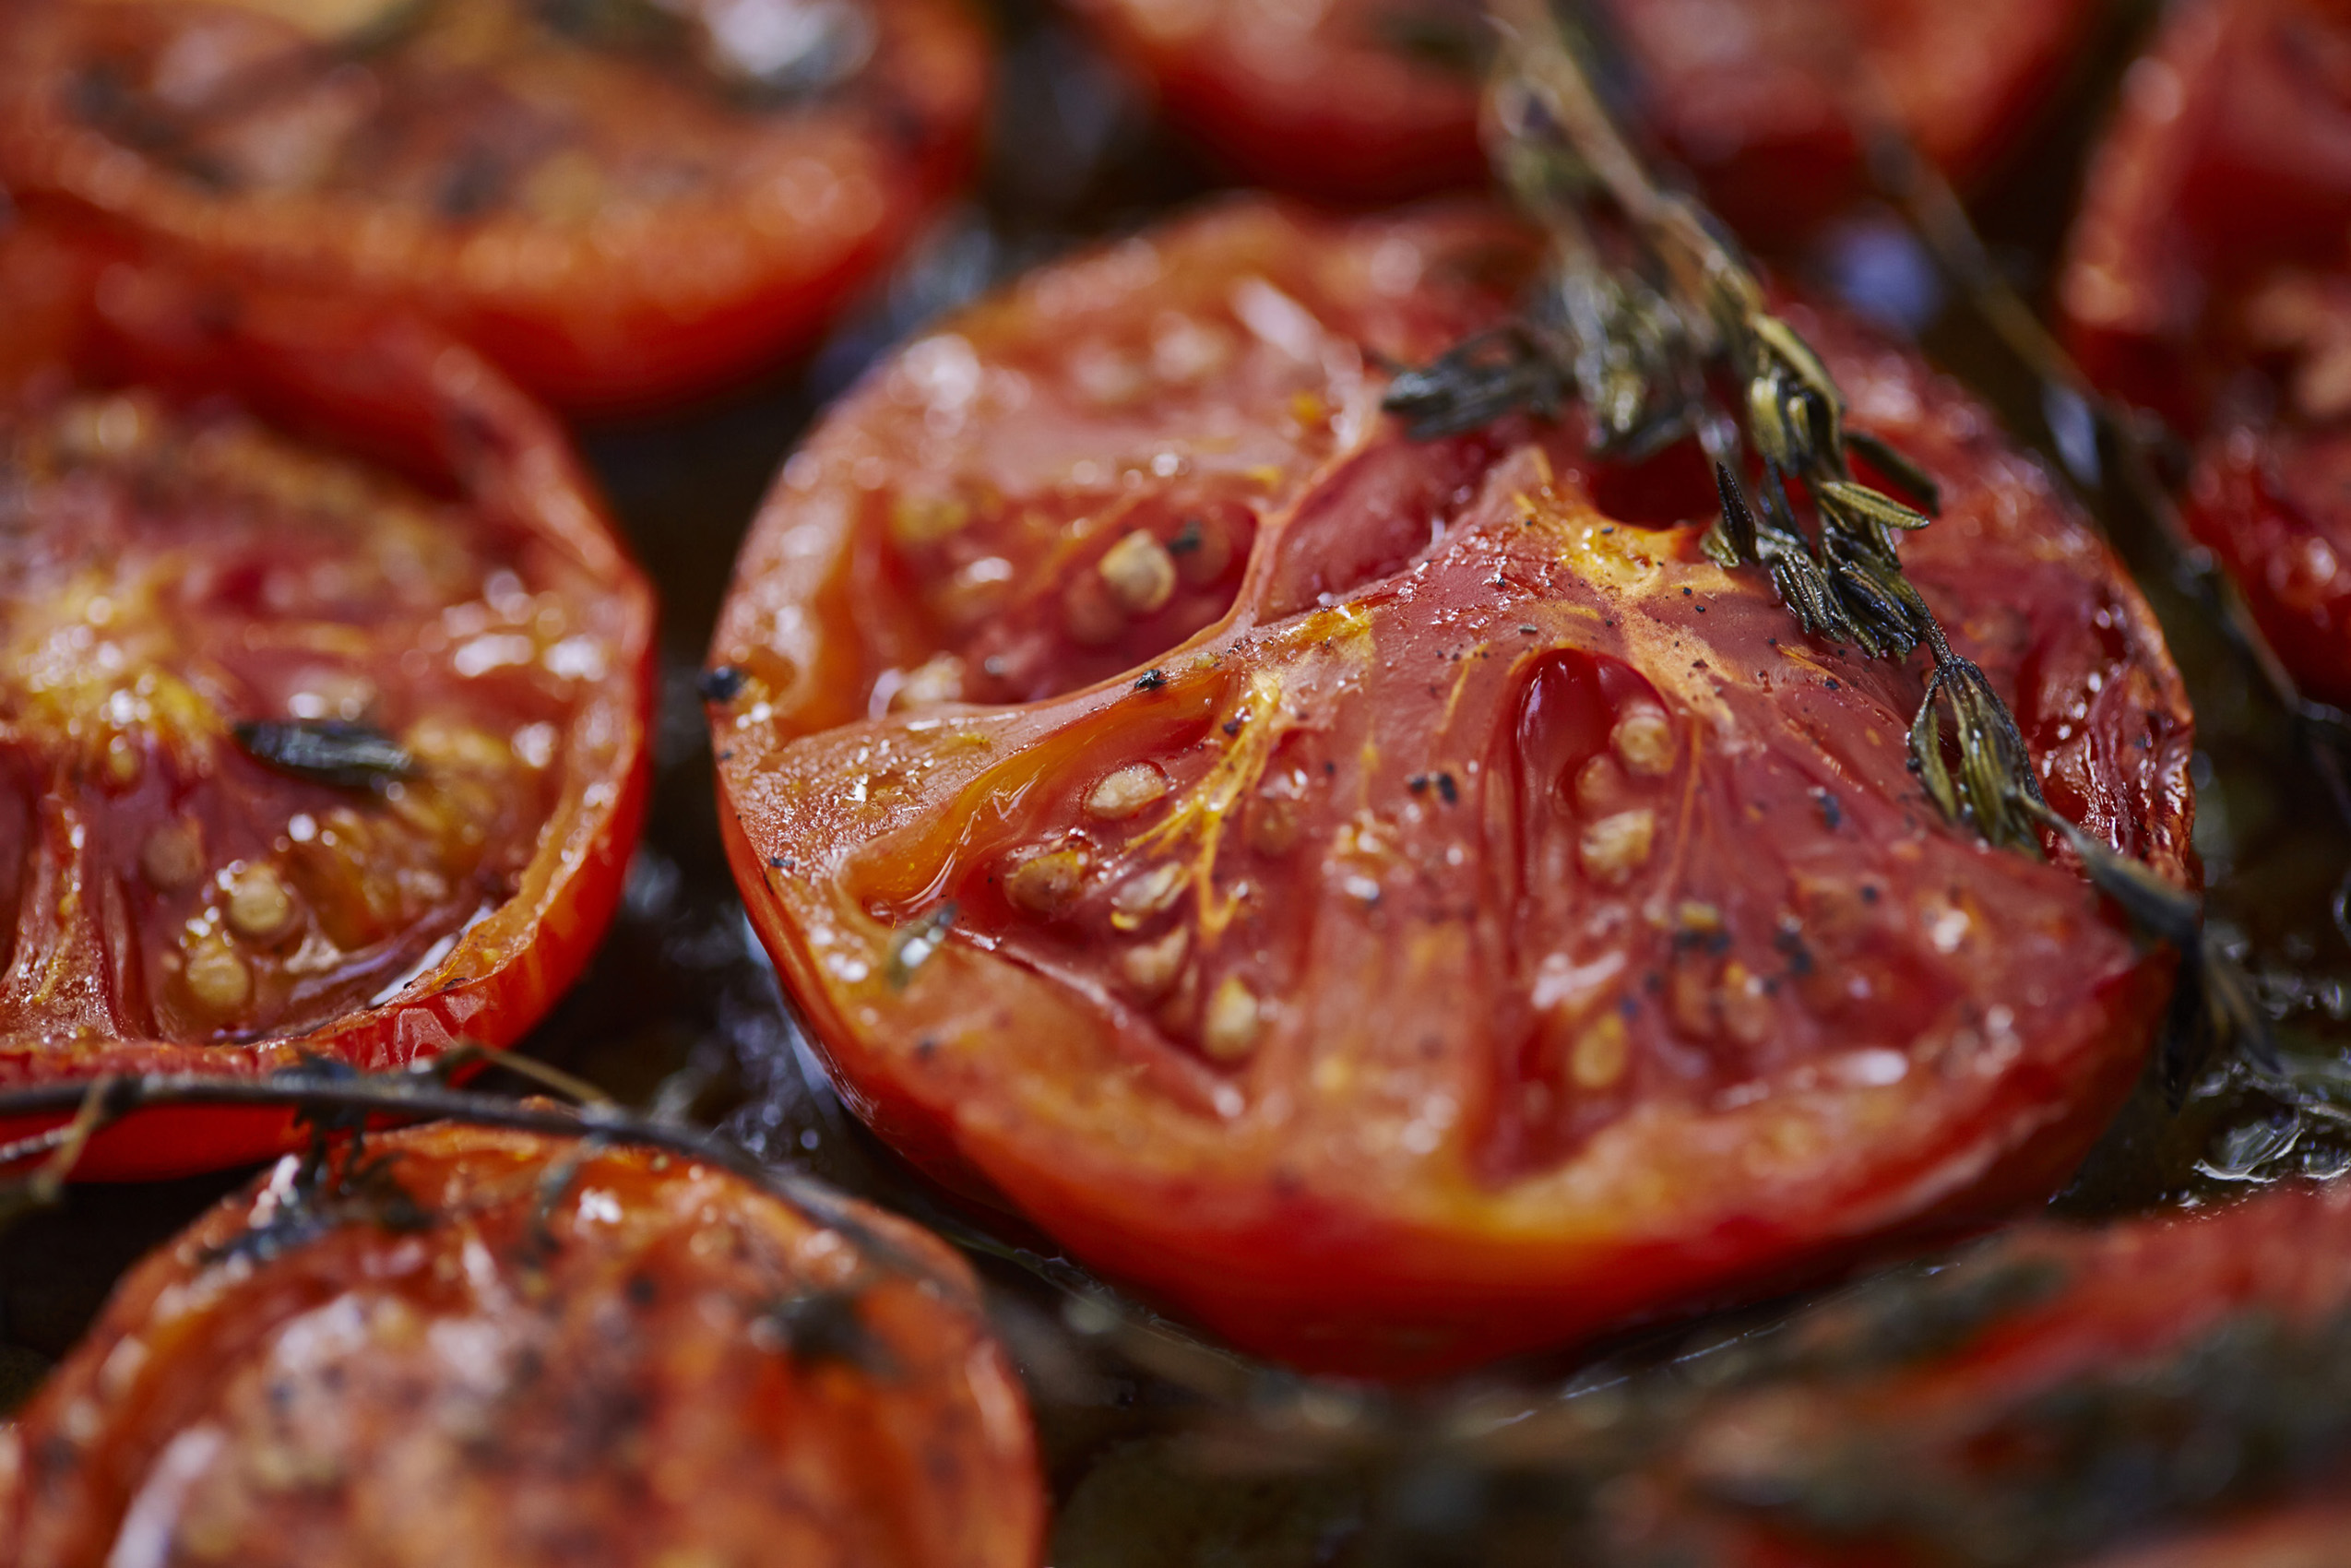 SteveRyan_Photographer_Ingredients_Produce_Vegetables_Tomato_Grilled_23